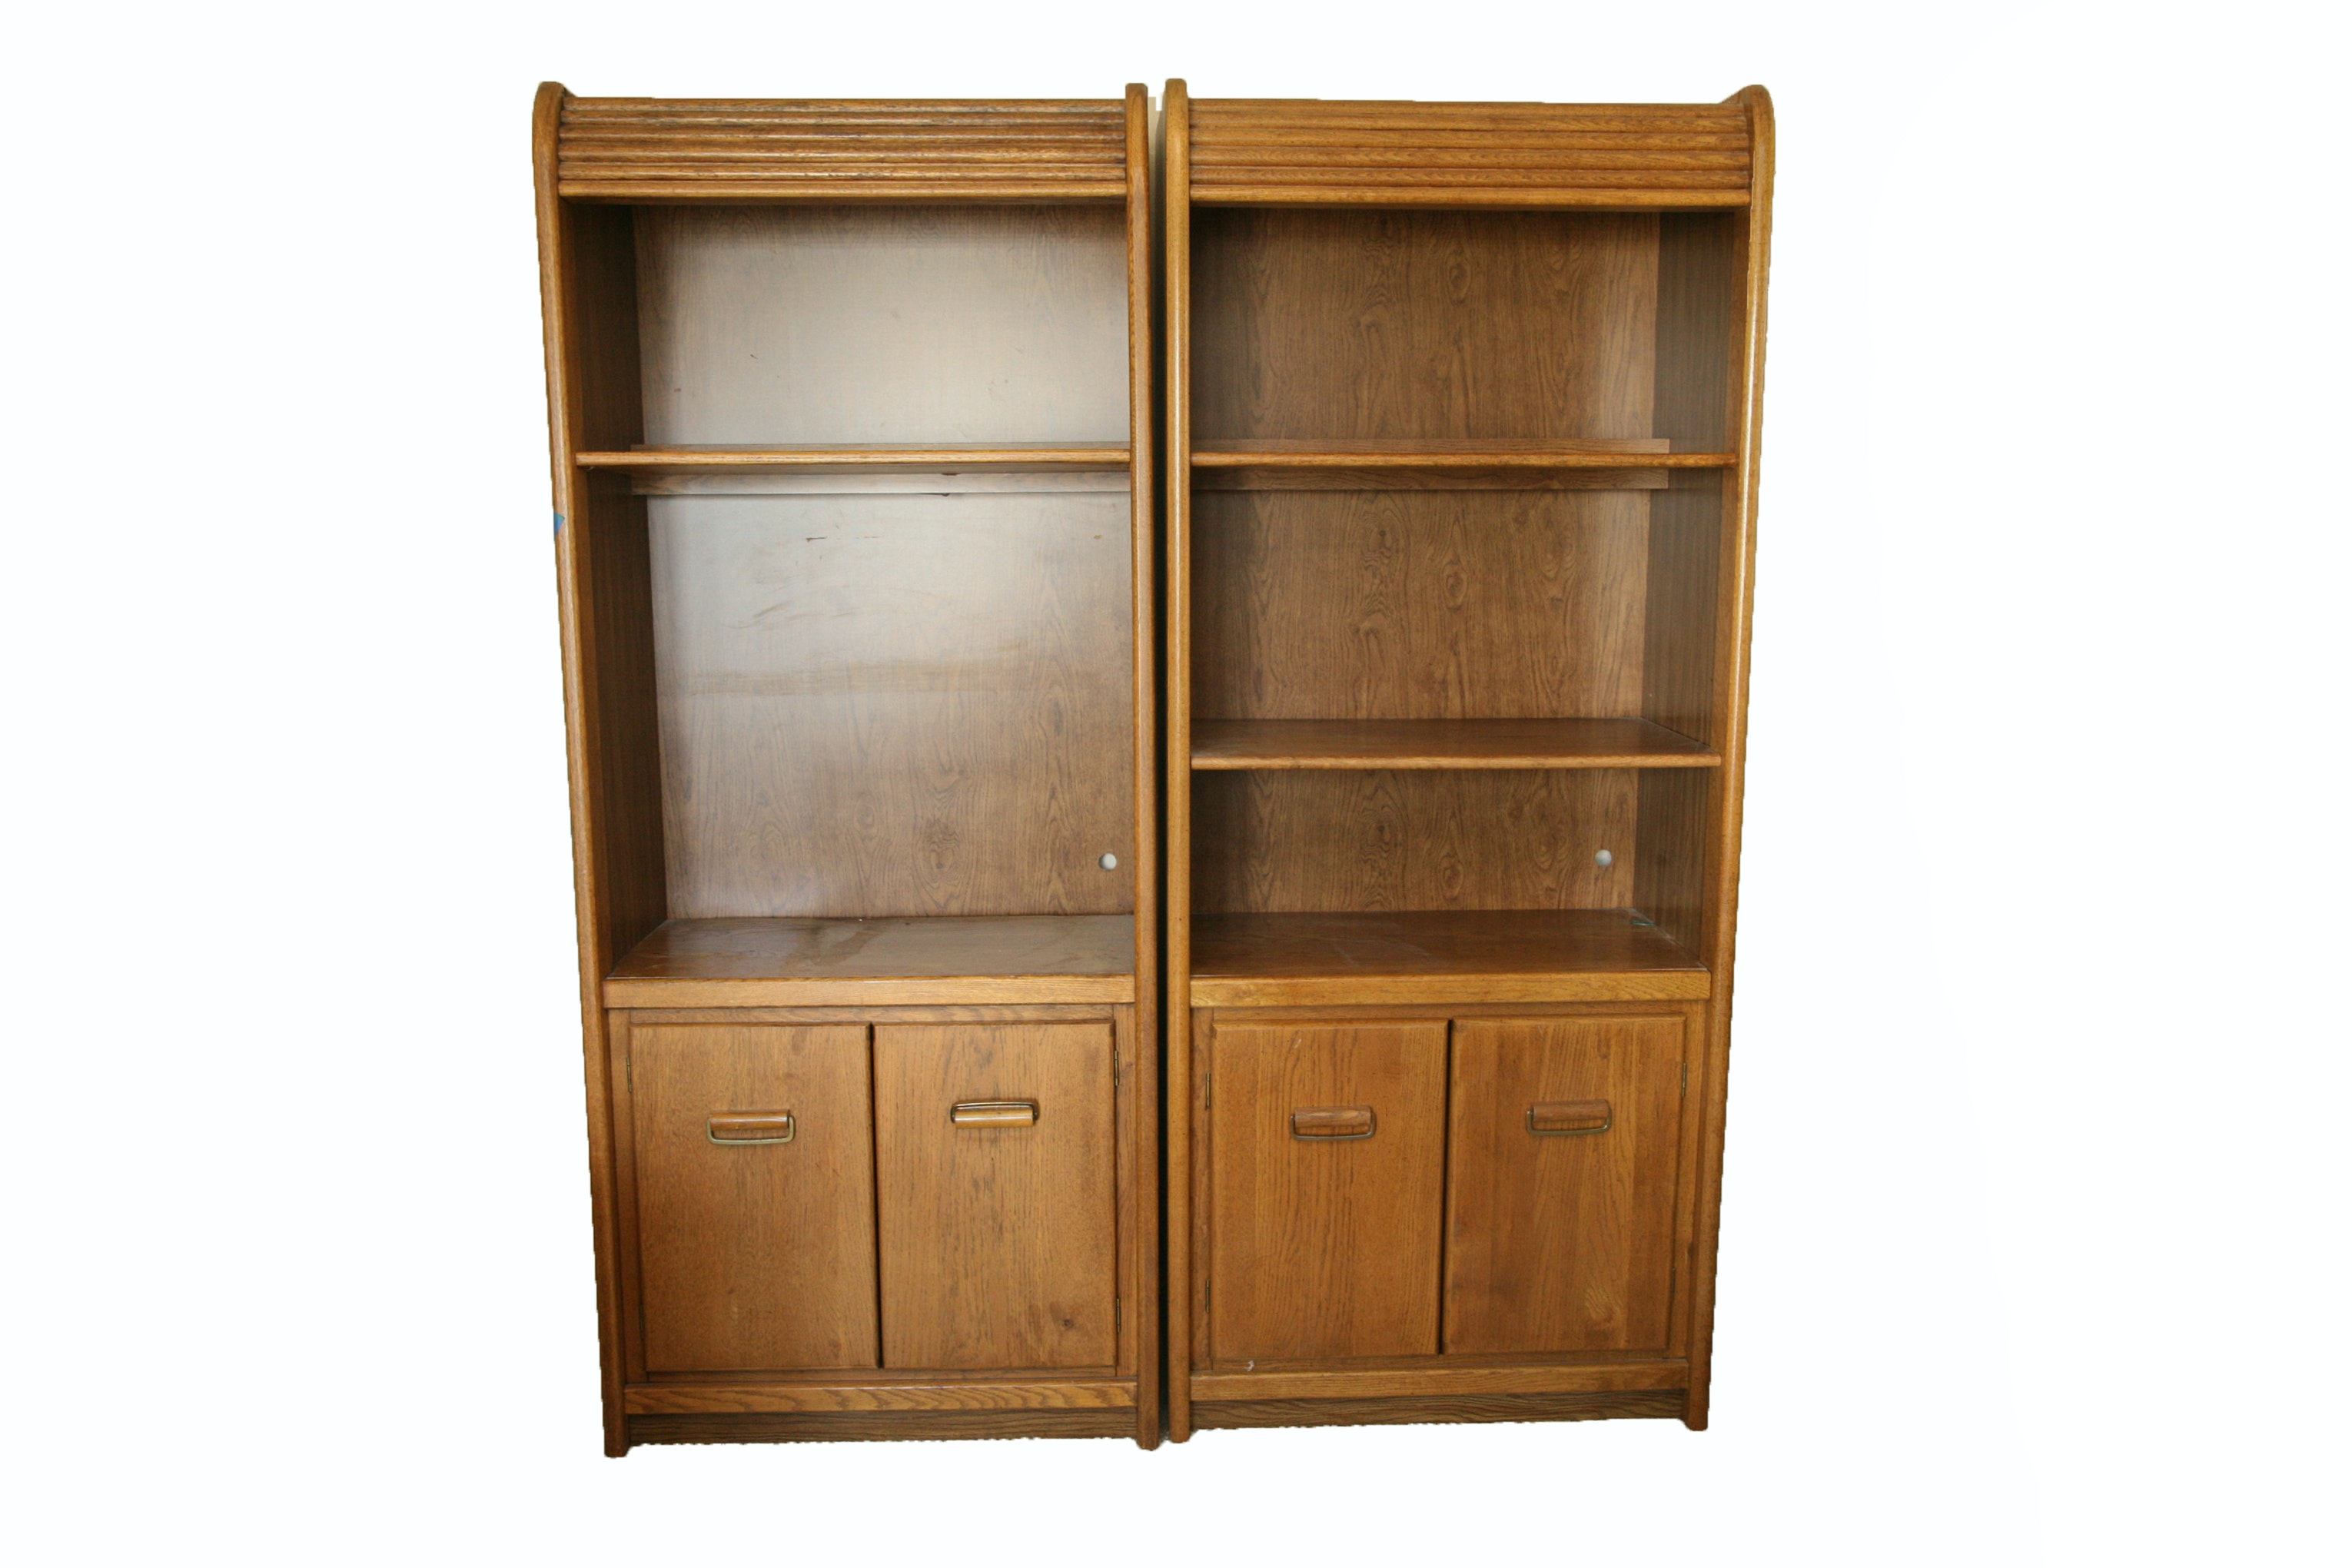 Pair of Campaign Style Bookshelves